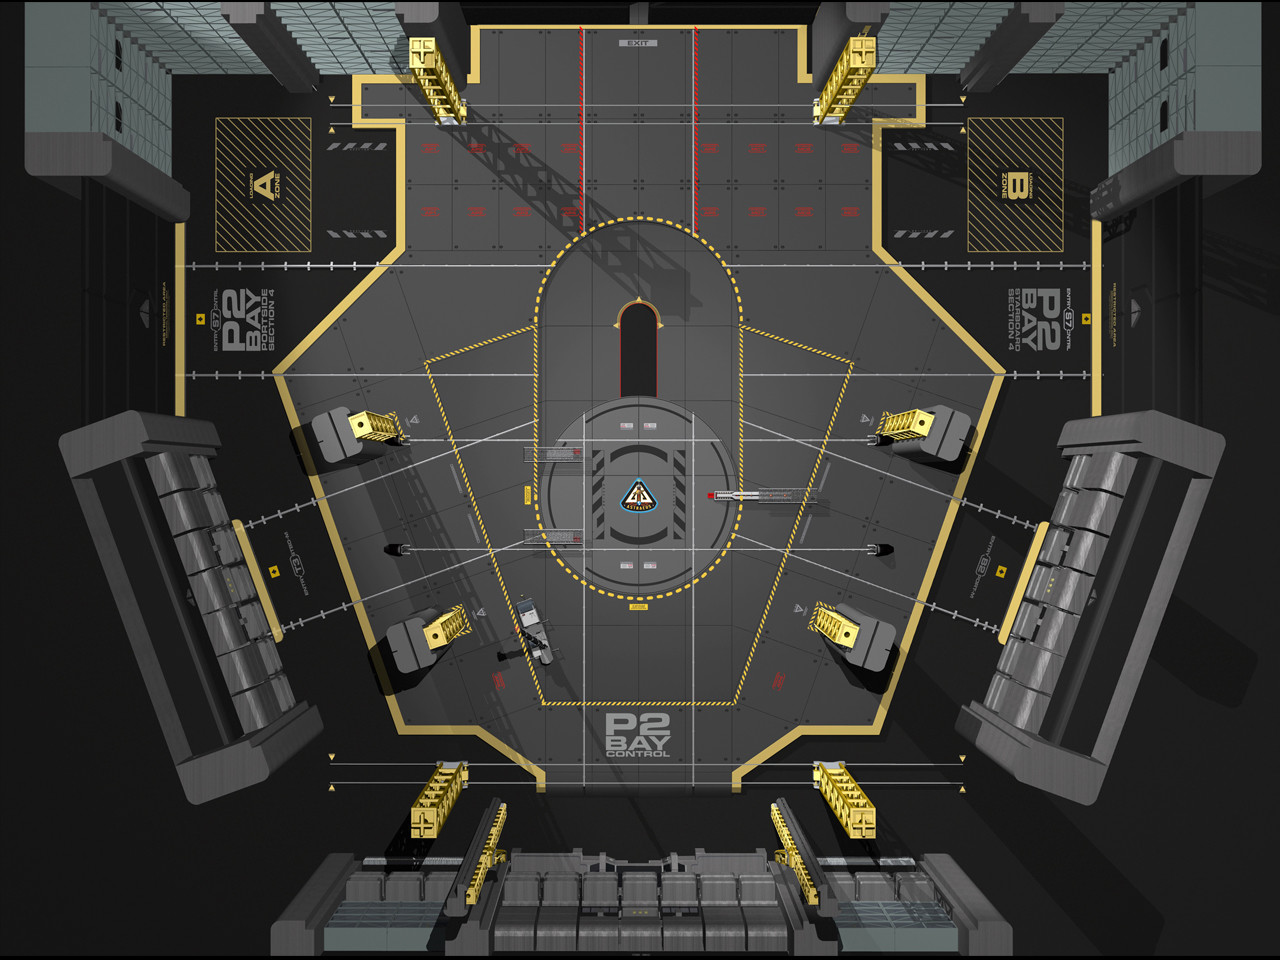 3D Hangar Plan Art for ScyFy's Eureka Season 5.